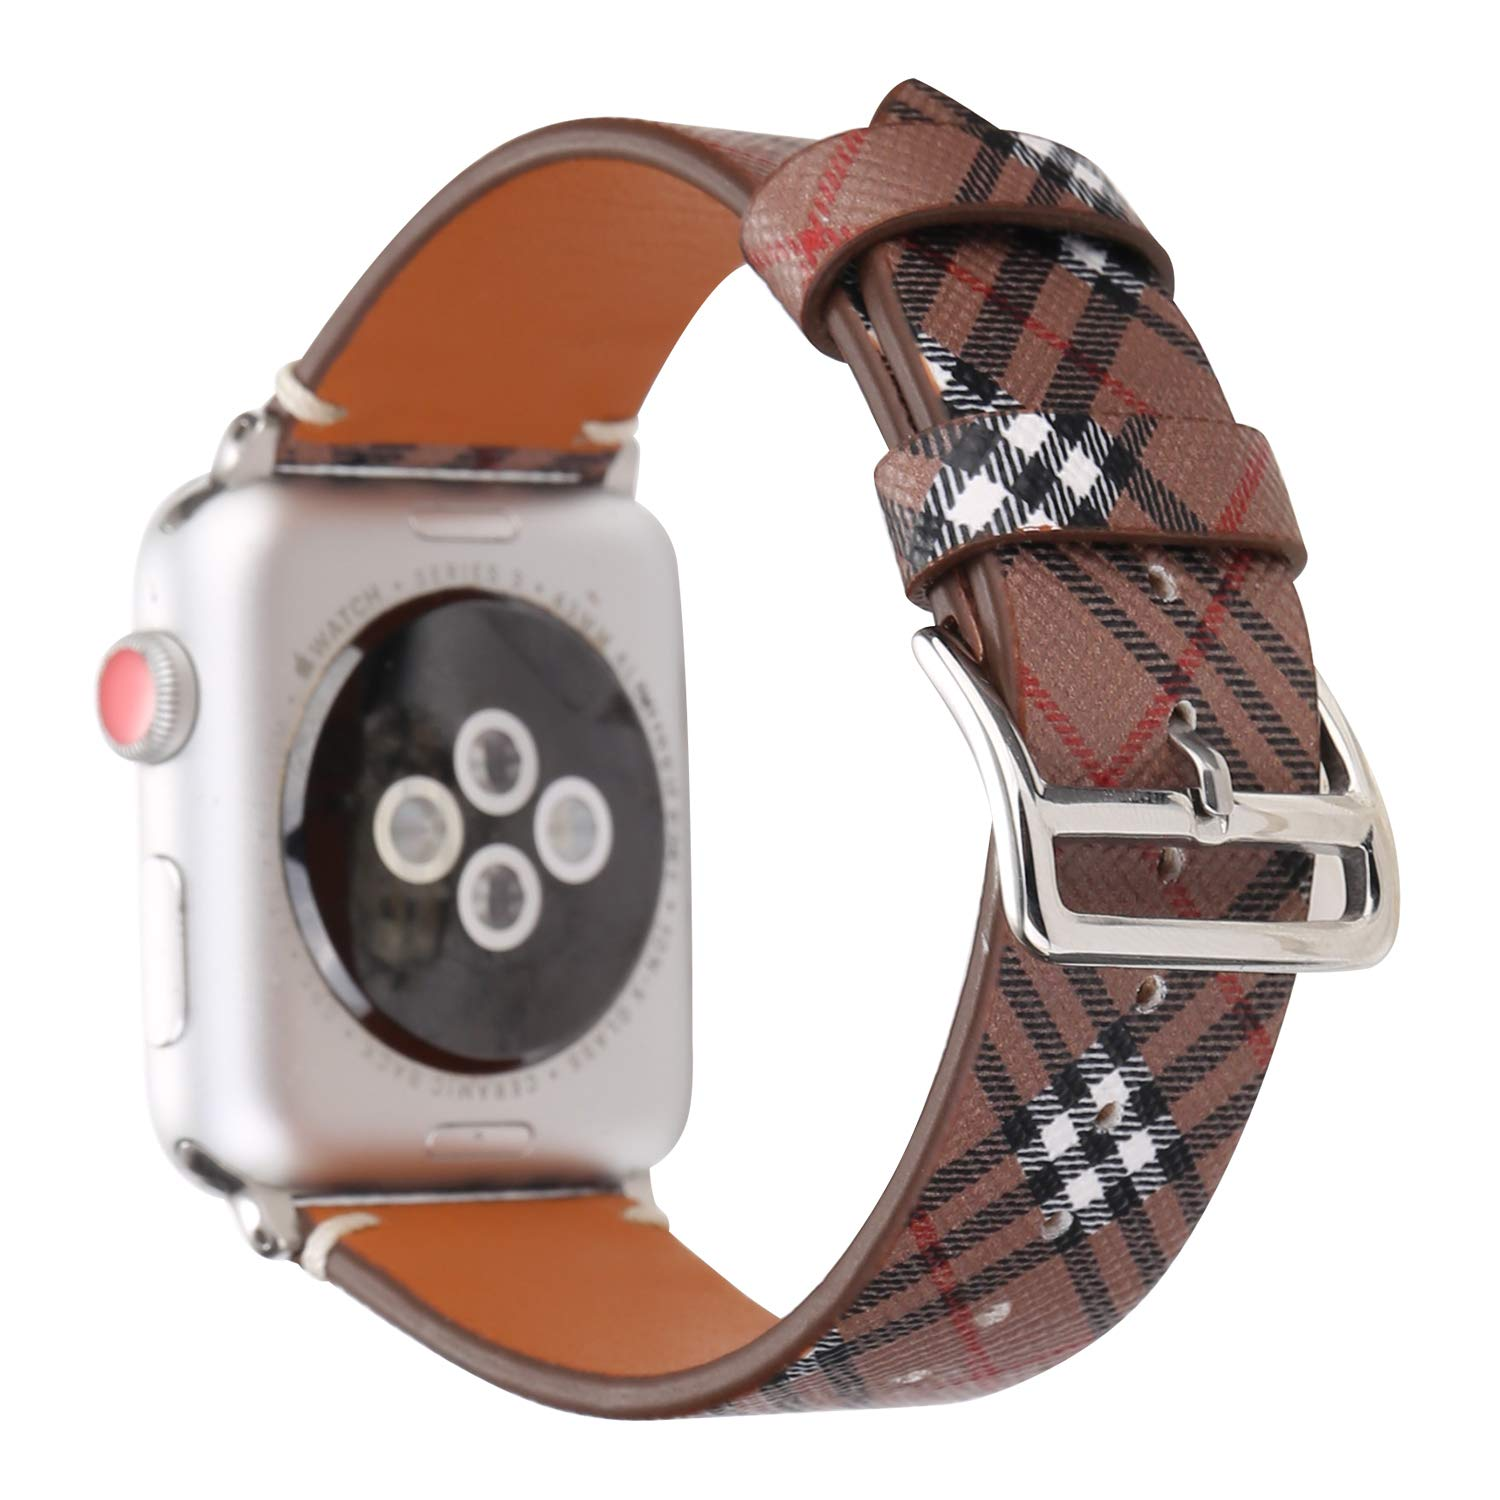 MeShow TCSHOW 38mm Tartan Plaid Style Replacement Strap Wrist Band with Metal Adapter Compatible for Apple Watch Series 3 2 1(Not fit for iWatch 42mm) (R)